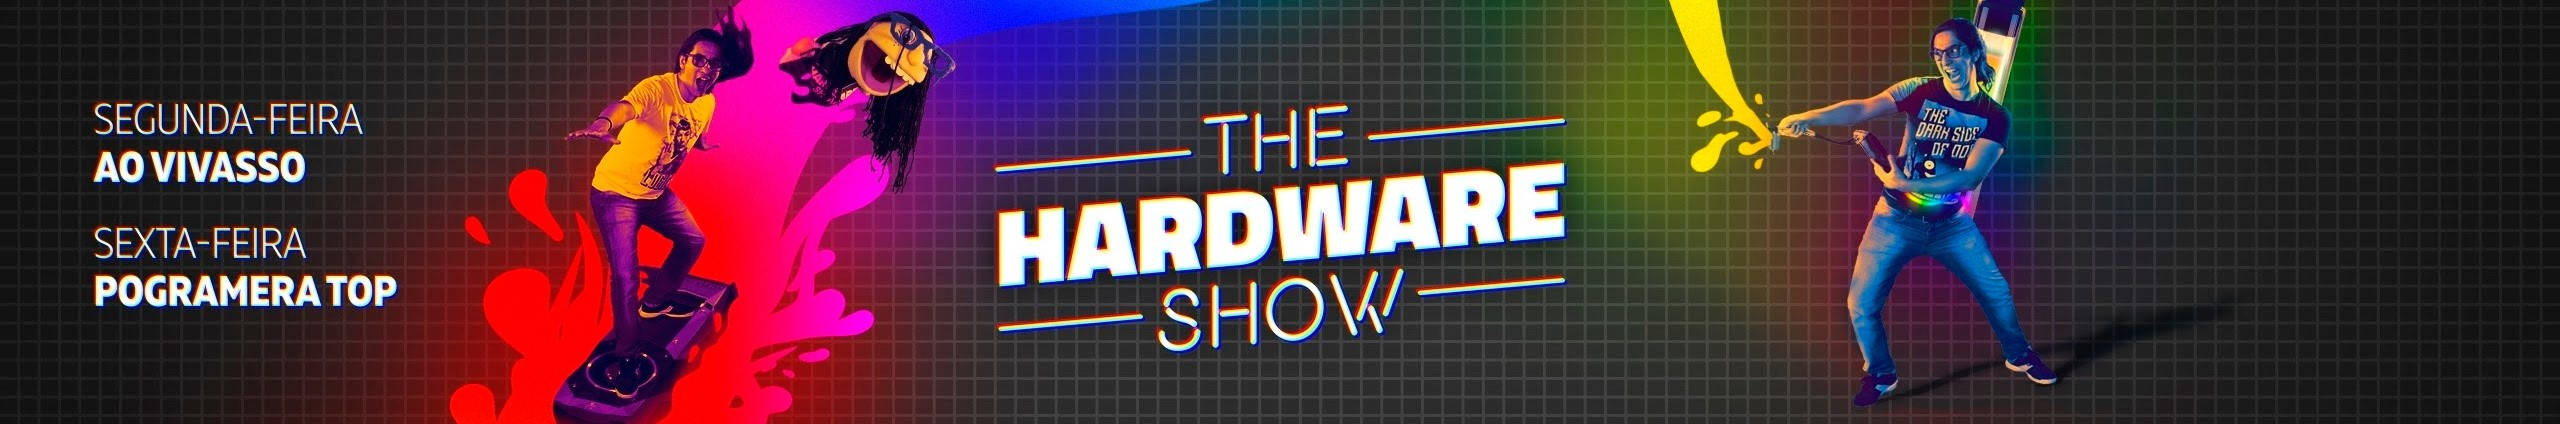 Canal The Hardware Show